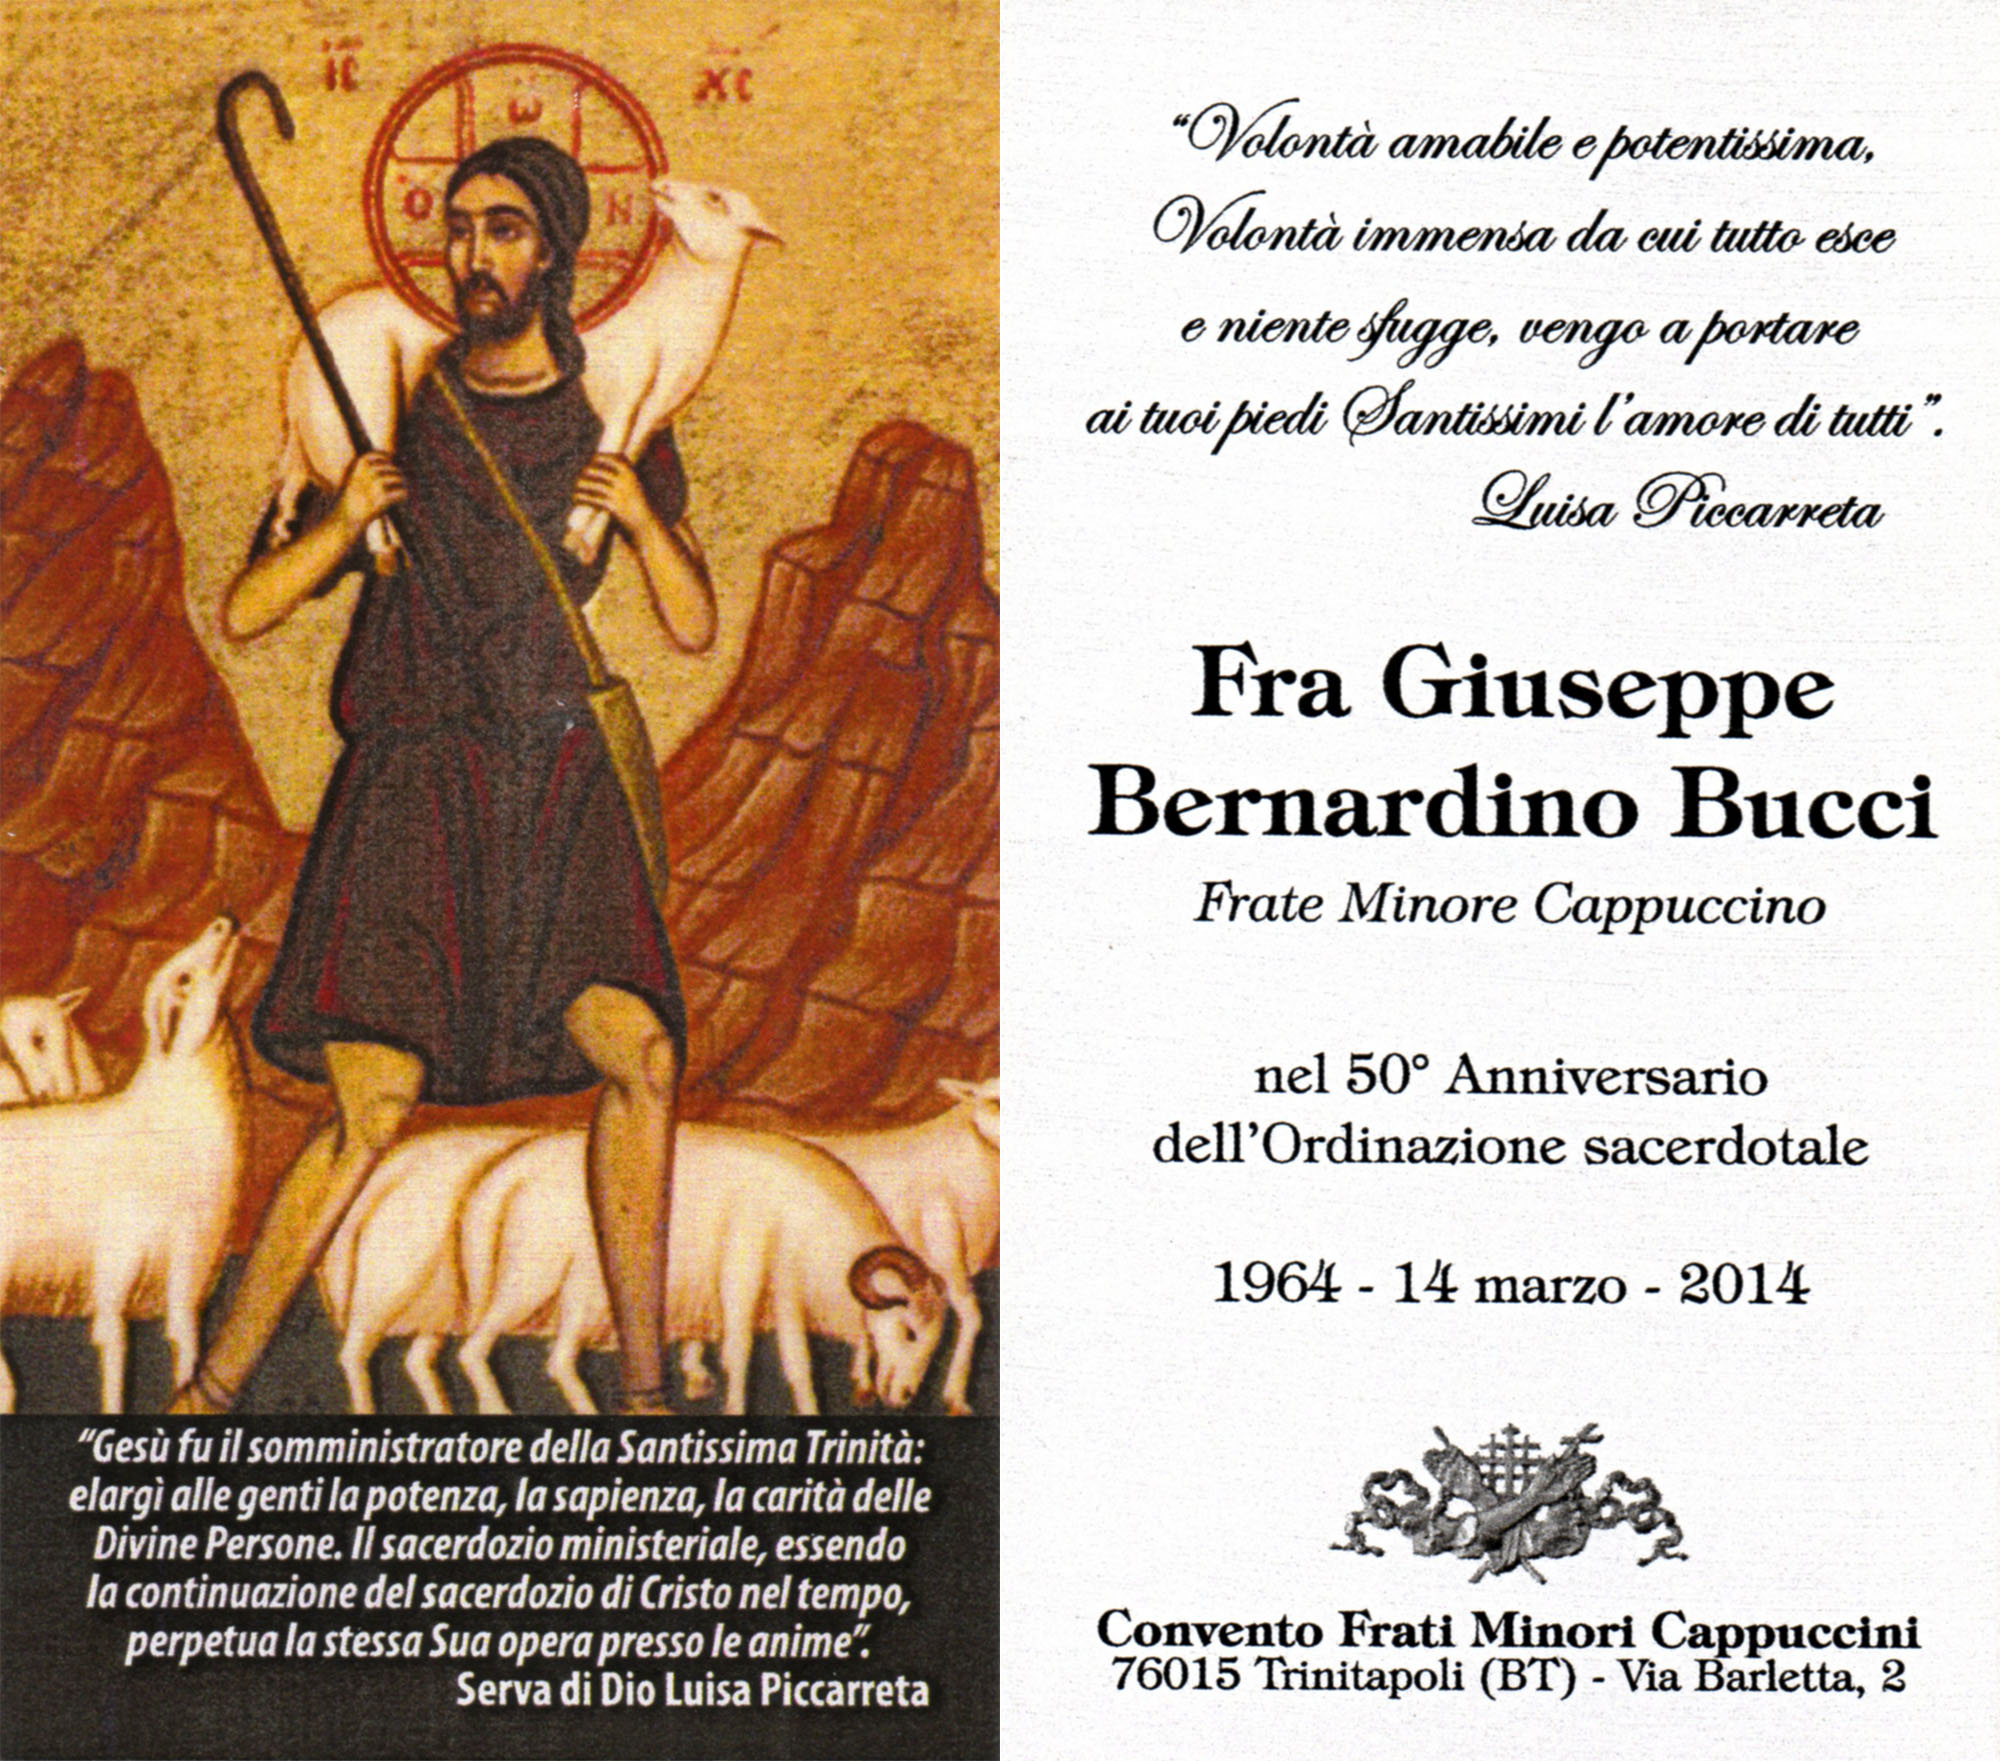 50th Anniversary Of Friar Giuseppe Bernardino Buccis Ordination To